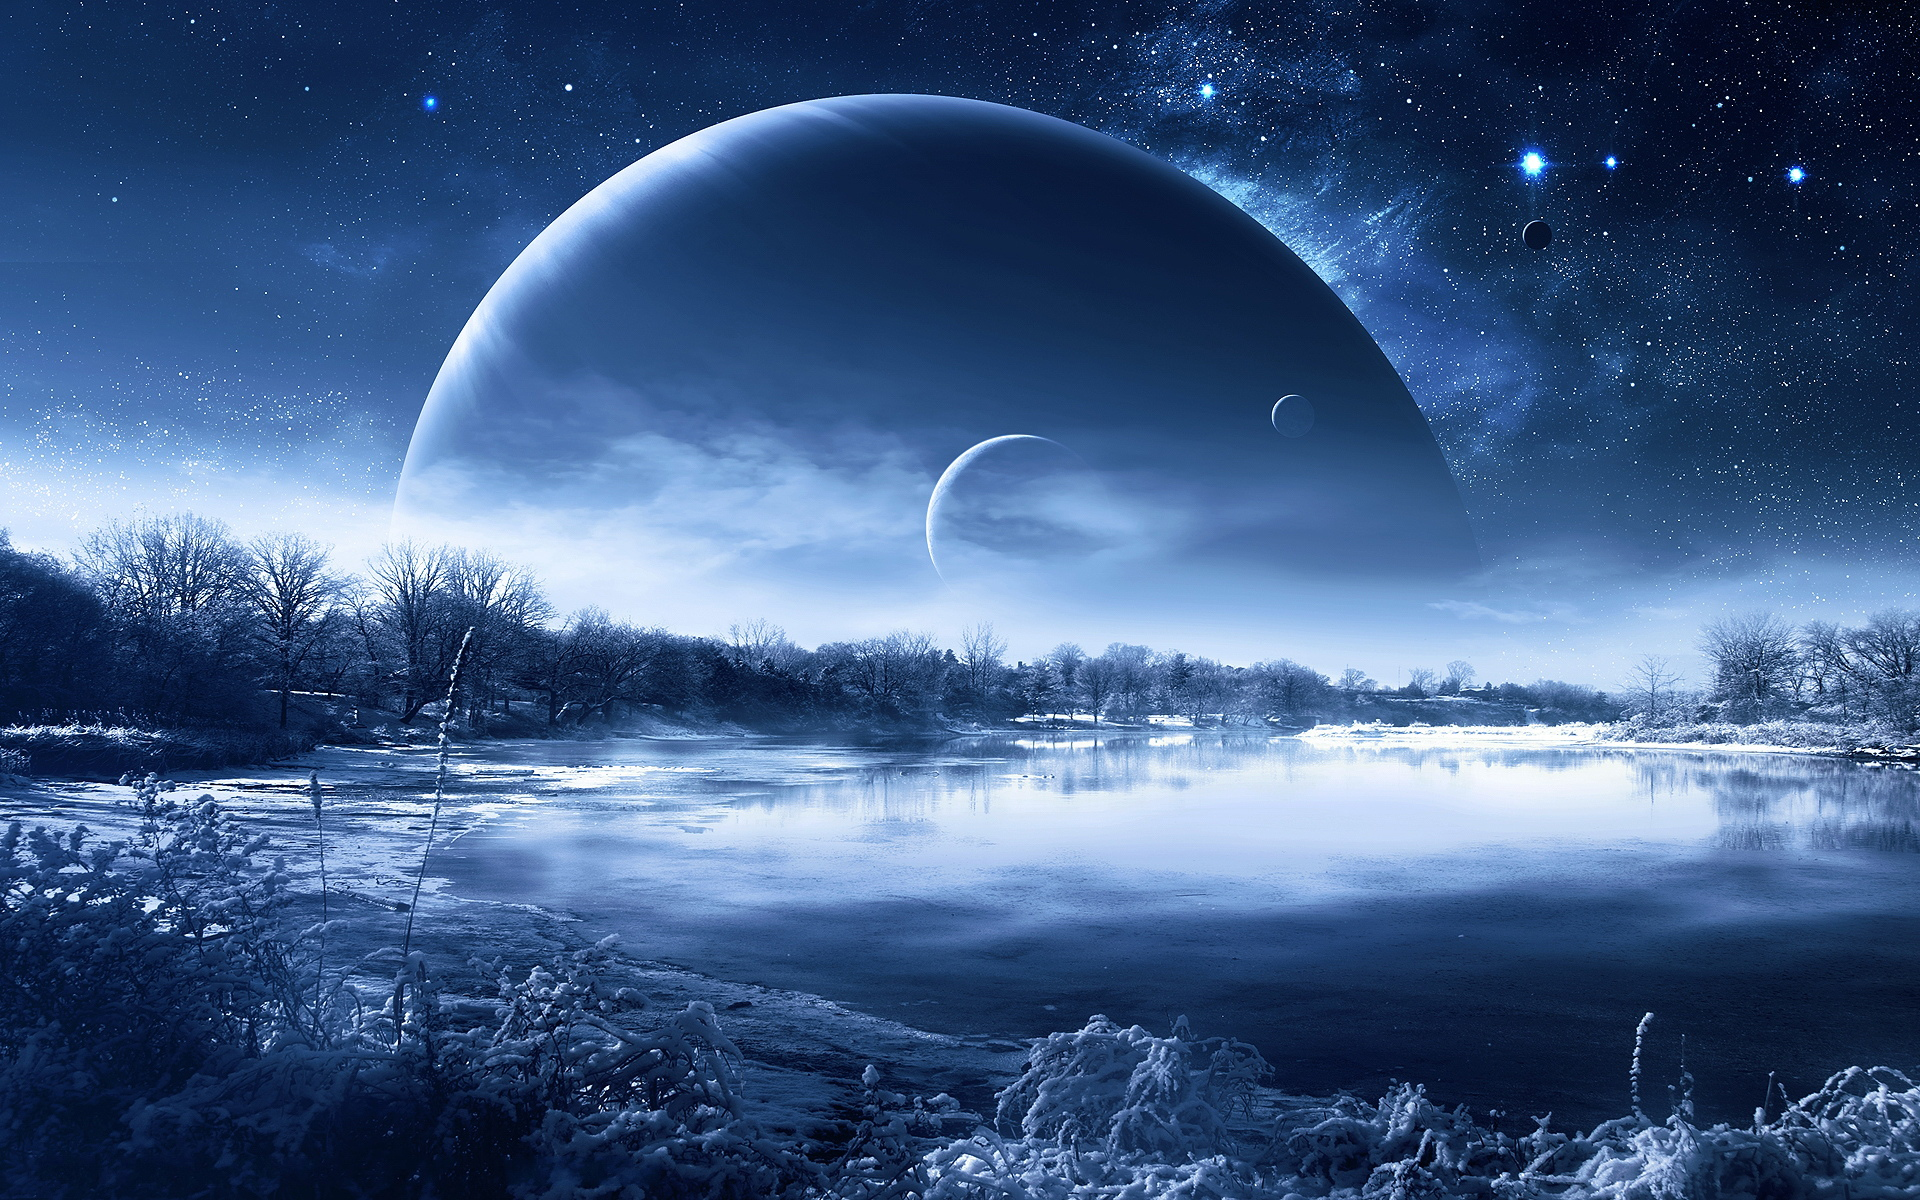 Winter Fantasy wallpaper | 1920x1200 | #22441